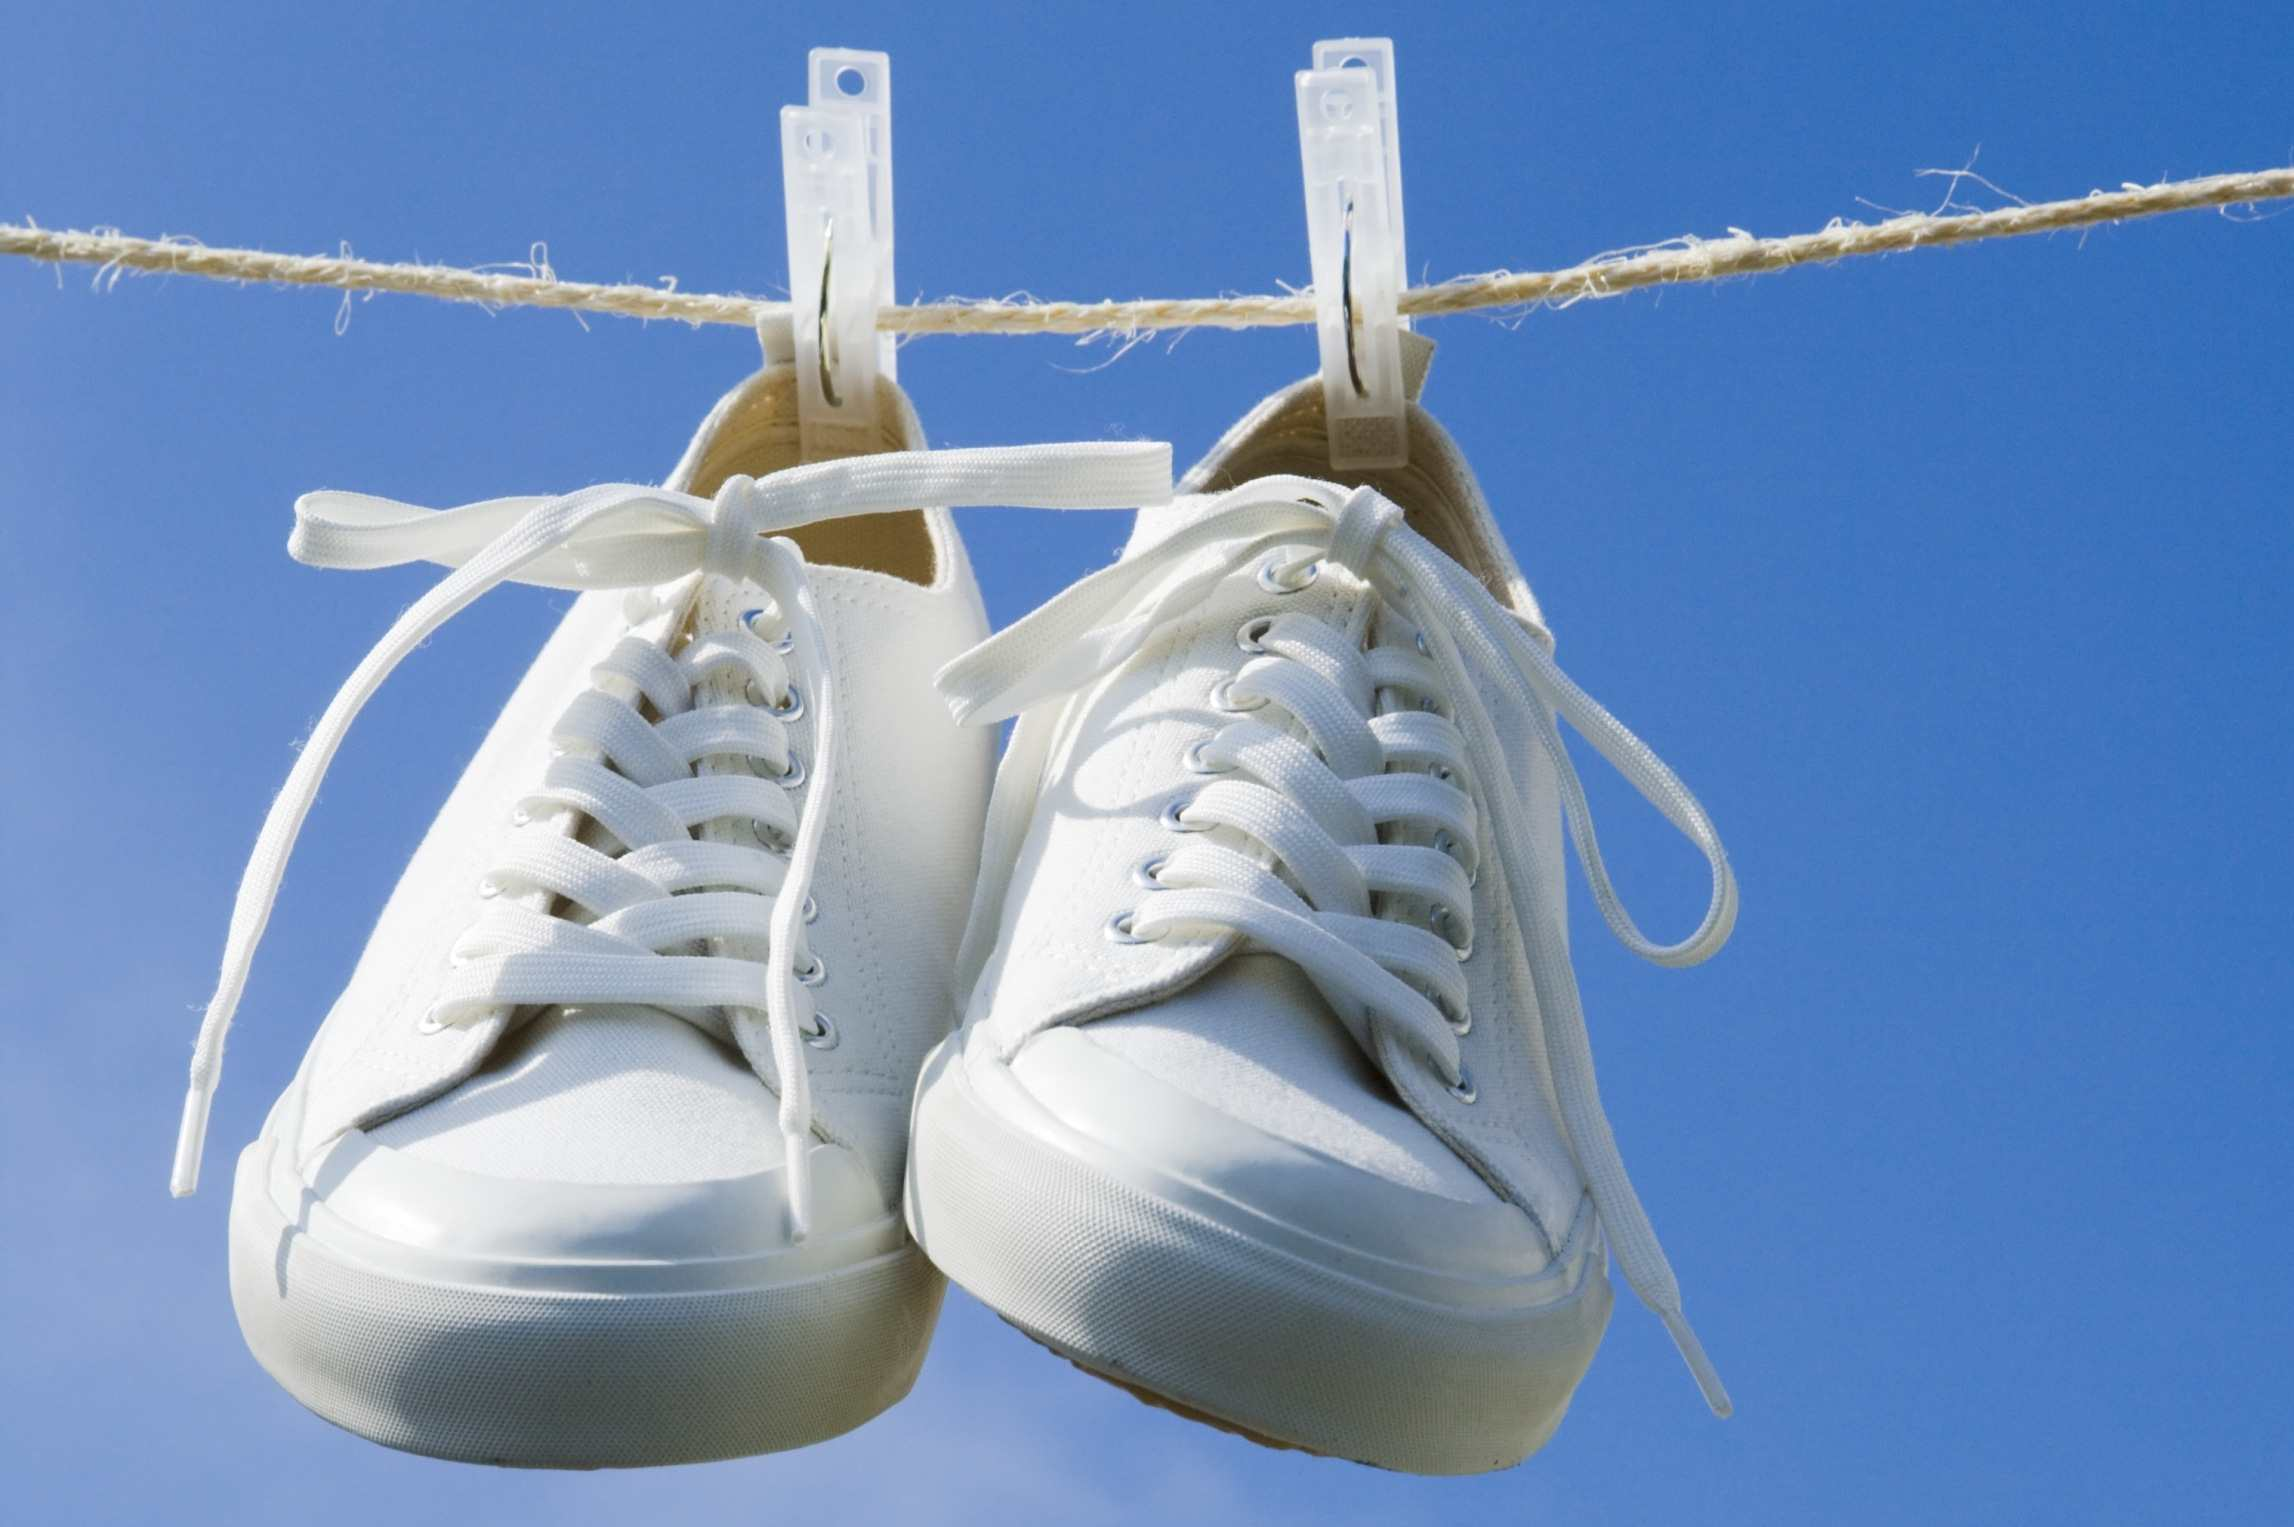 f32332e1600 10 Ways to Prevent Stinky Shoes and Smelly Feet